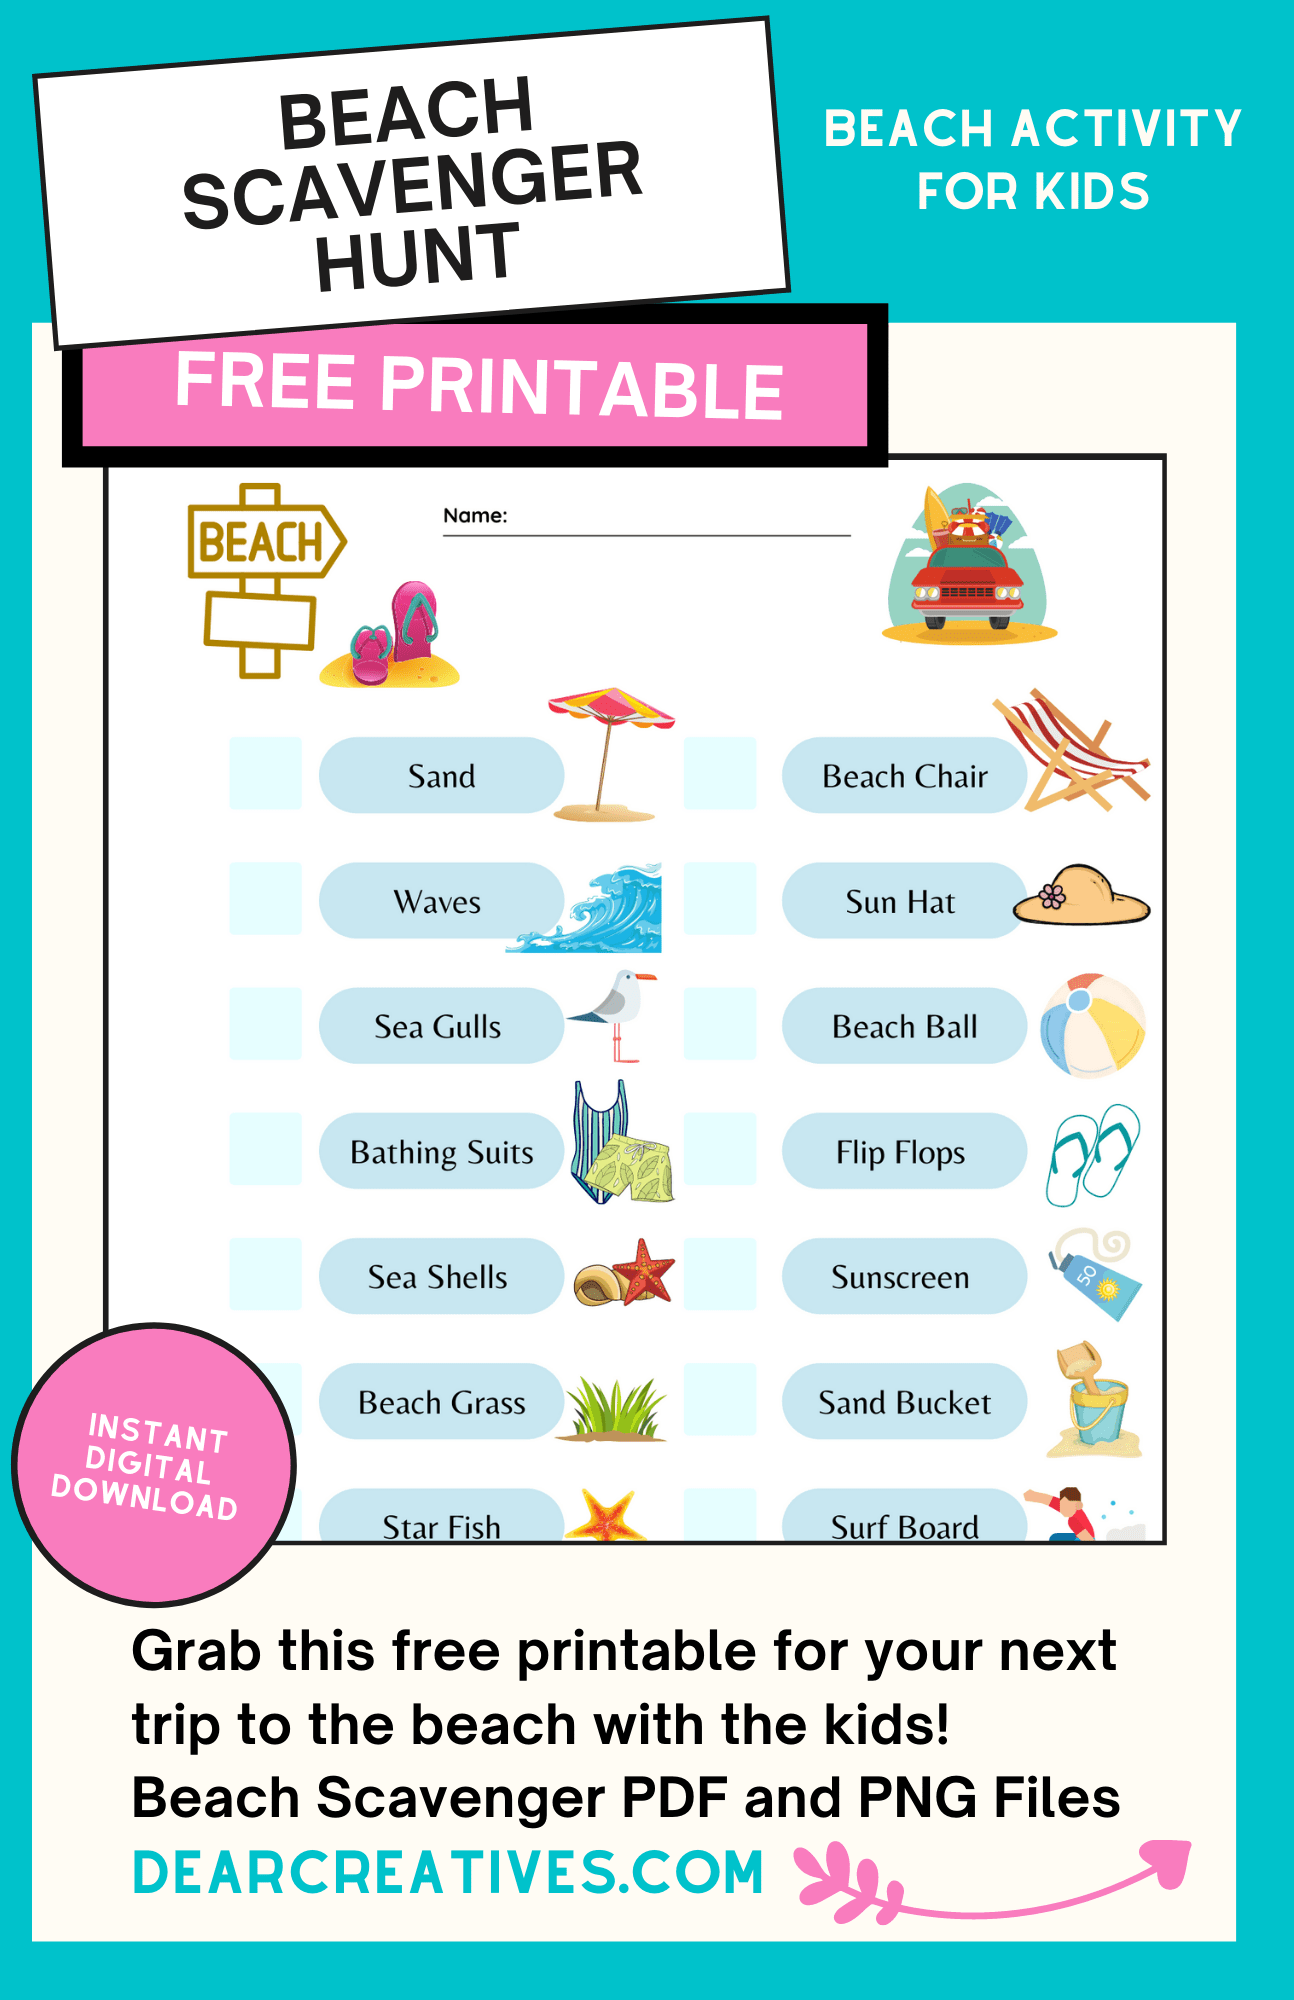 Printable Beach Scavenger Hunt (FREE)